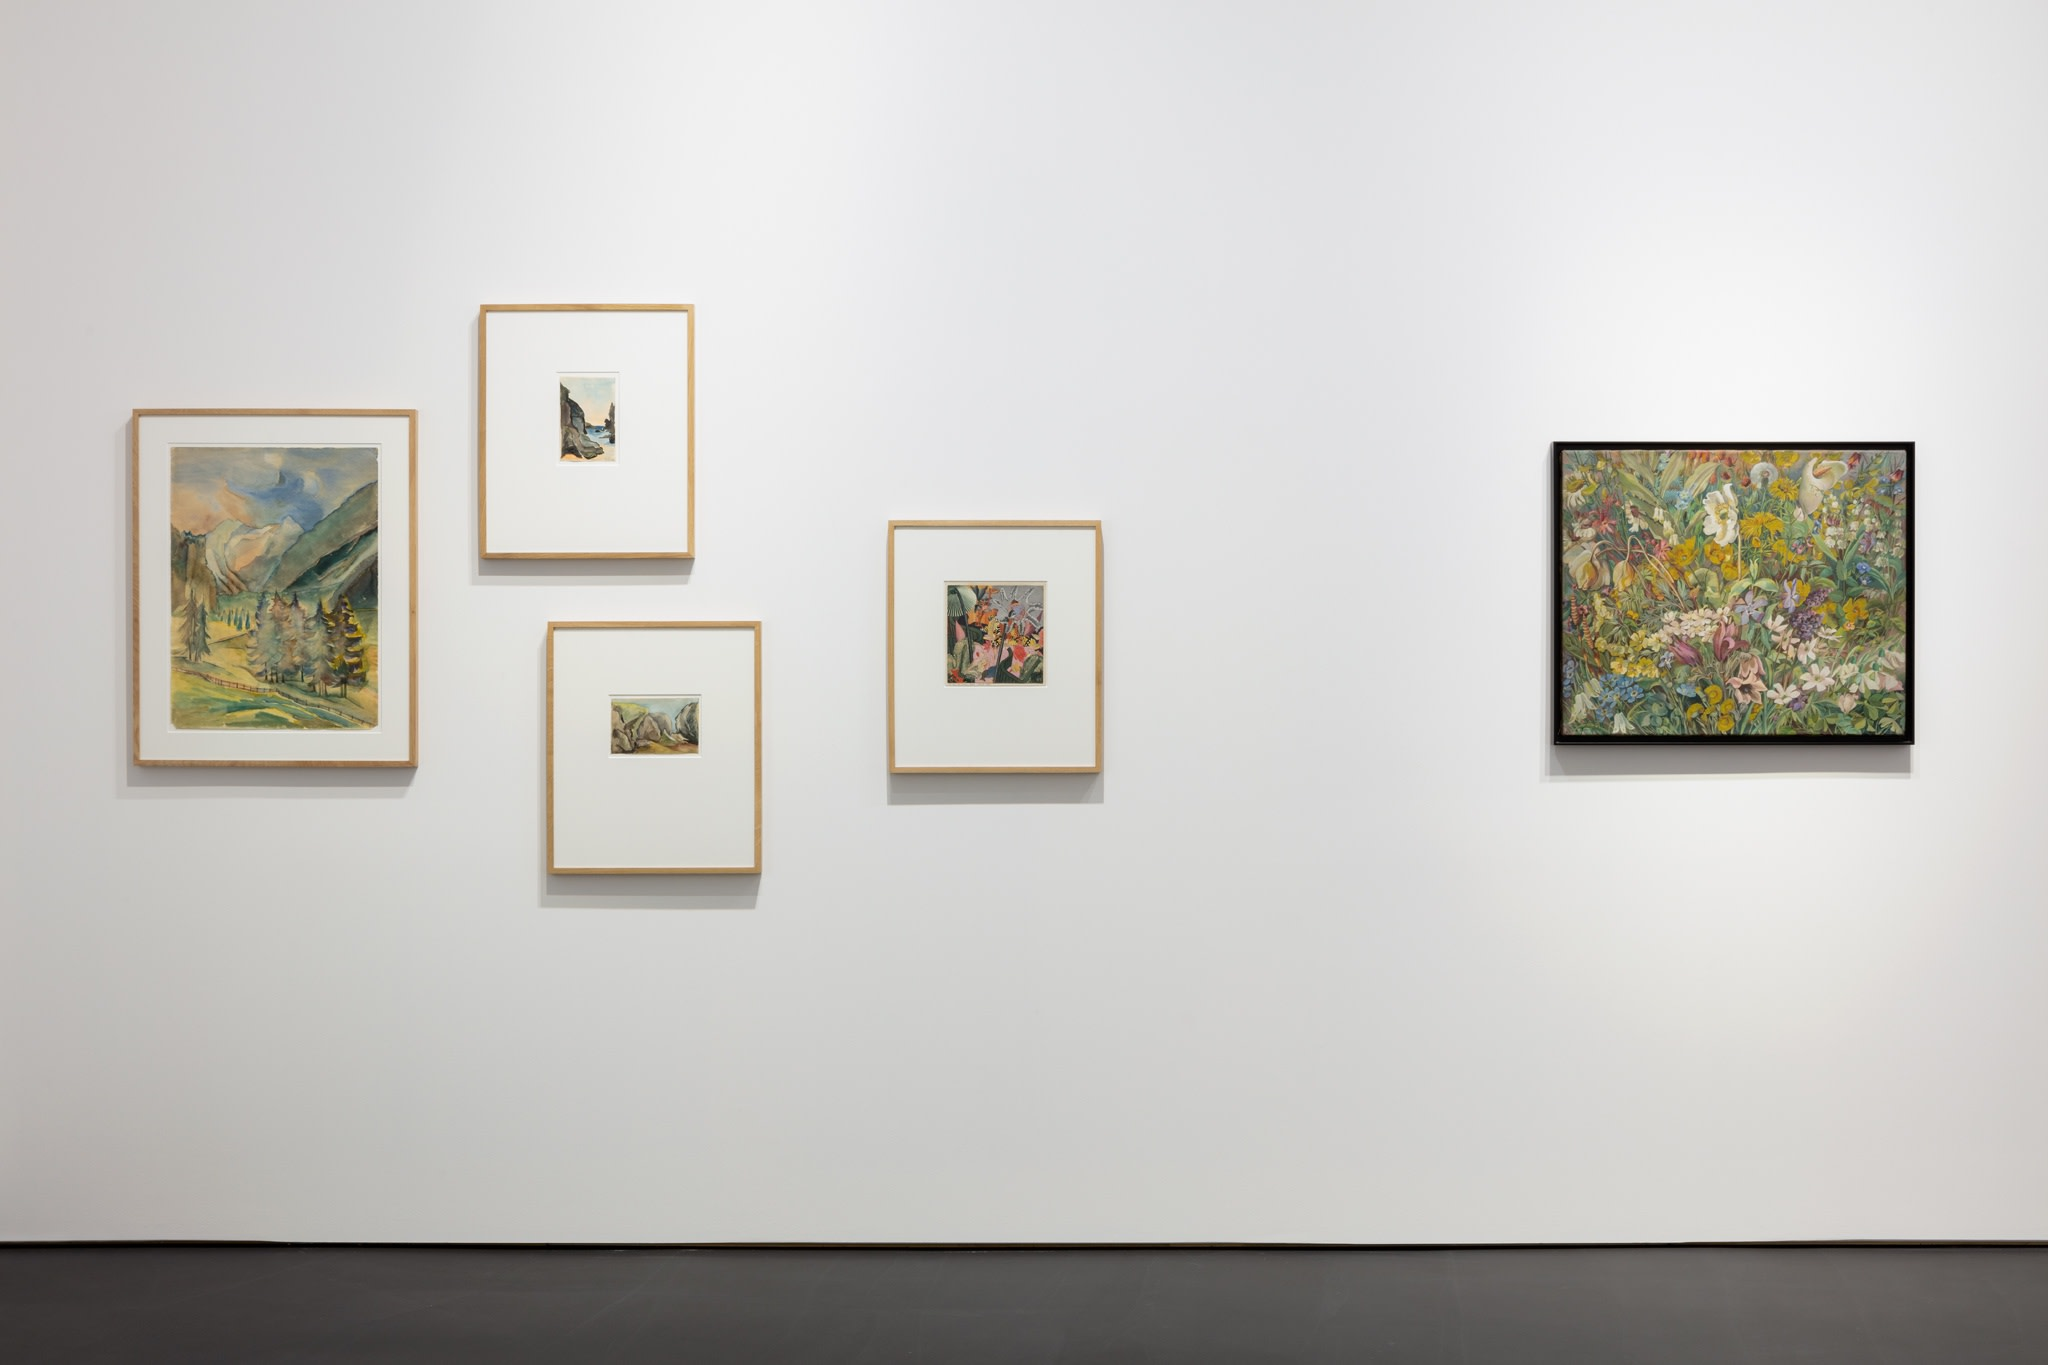 Works by Hannah Höch. Exhibition view: L'Invitation au voyage, Esther Schipper, Berlin. Photo © Andrea Rossetti